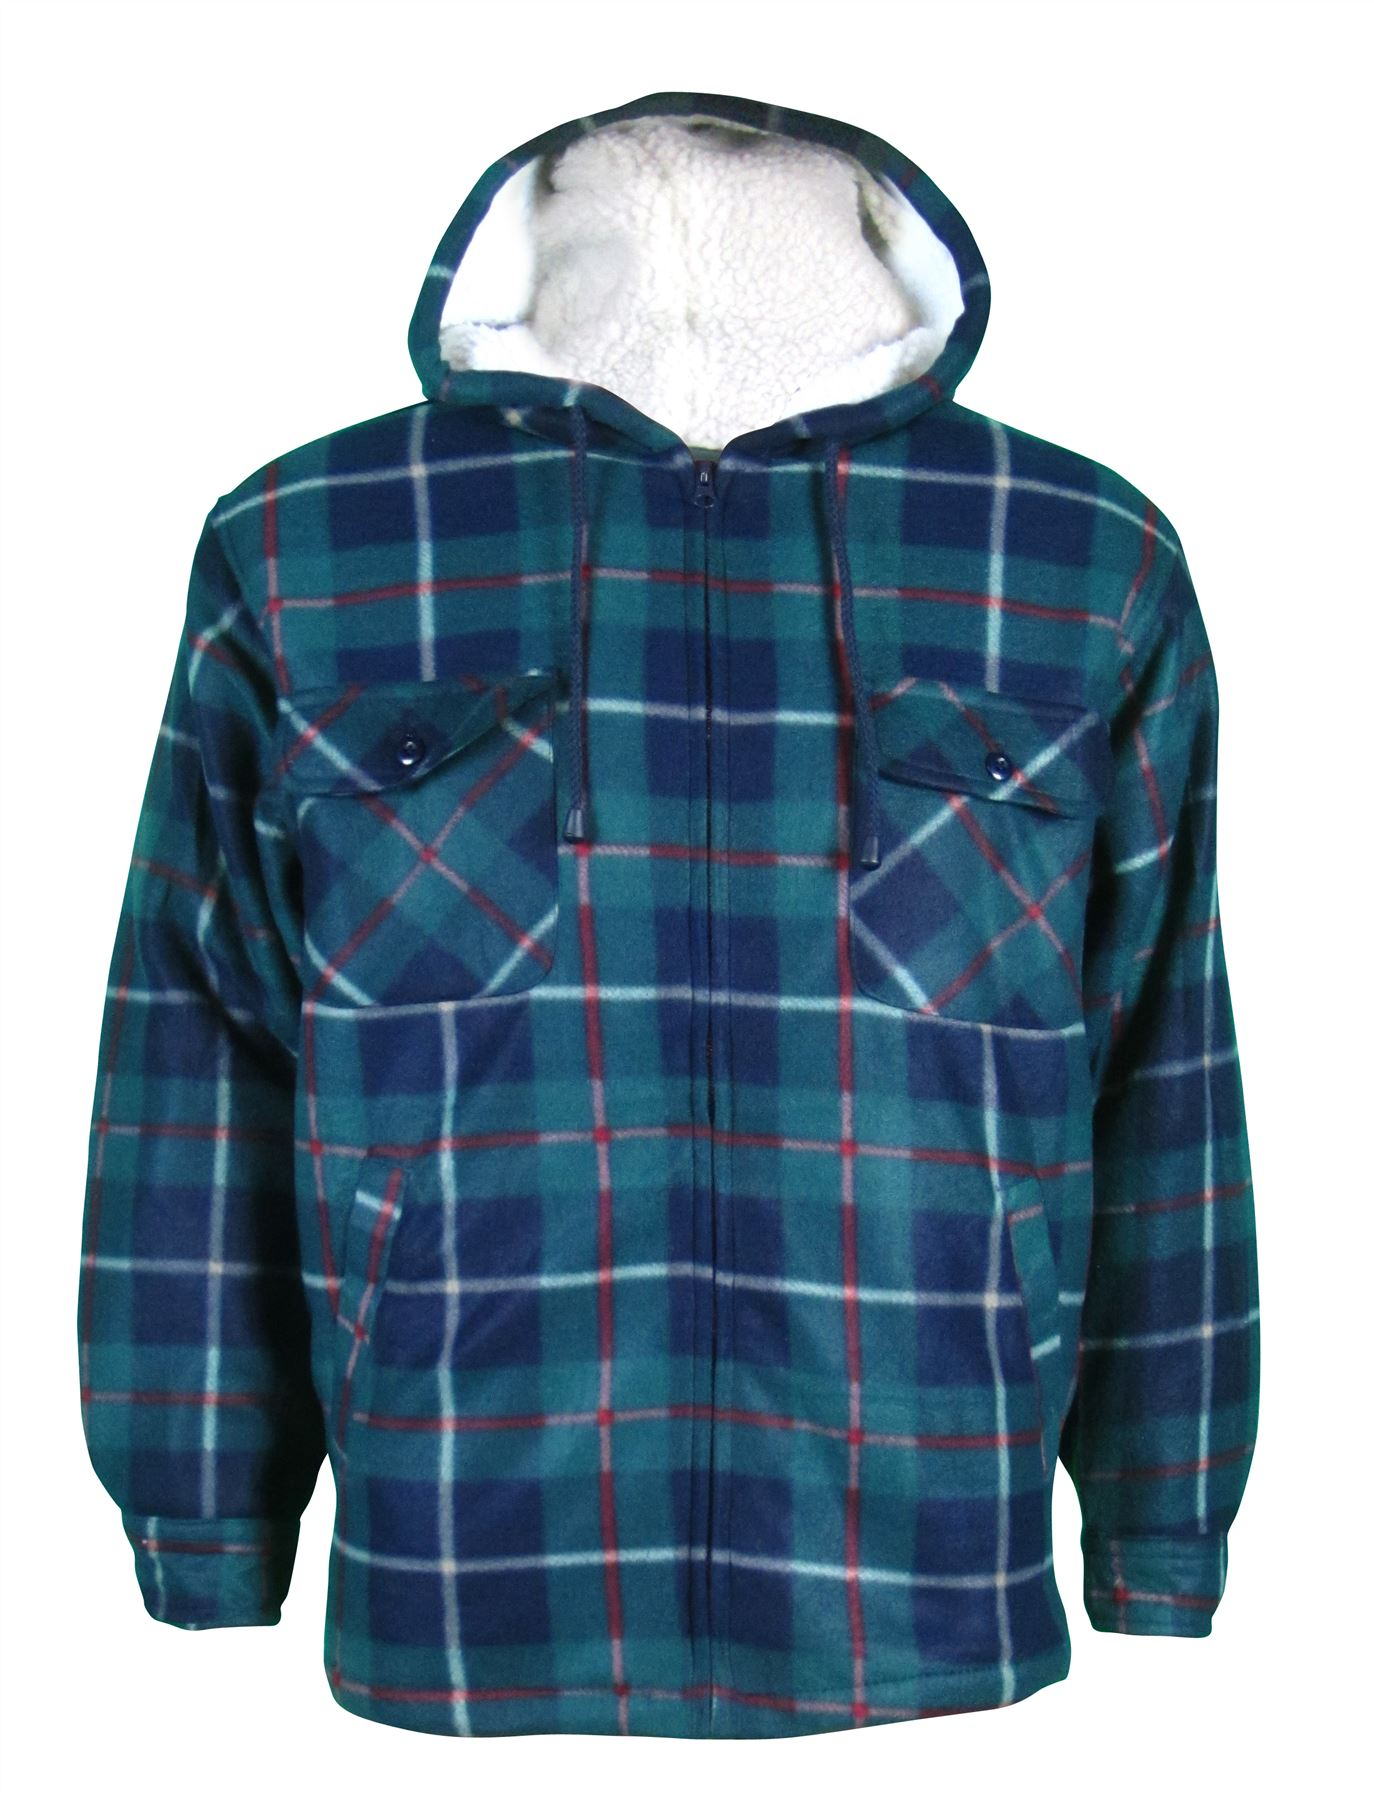 mens sherpa fleece hooded lumberjack check flannel fleece work shirt jacket top ebay. Black Bedroom Furniture Sets. Home Design Ideas